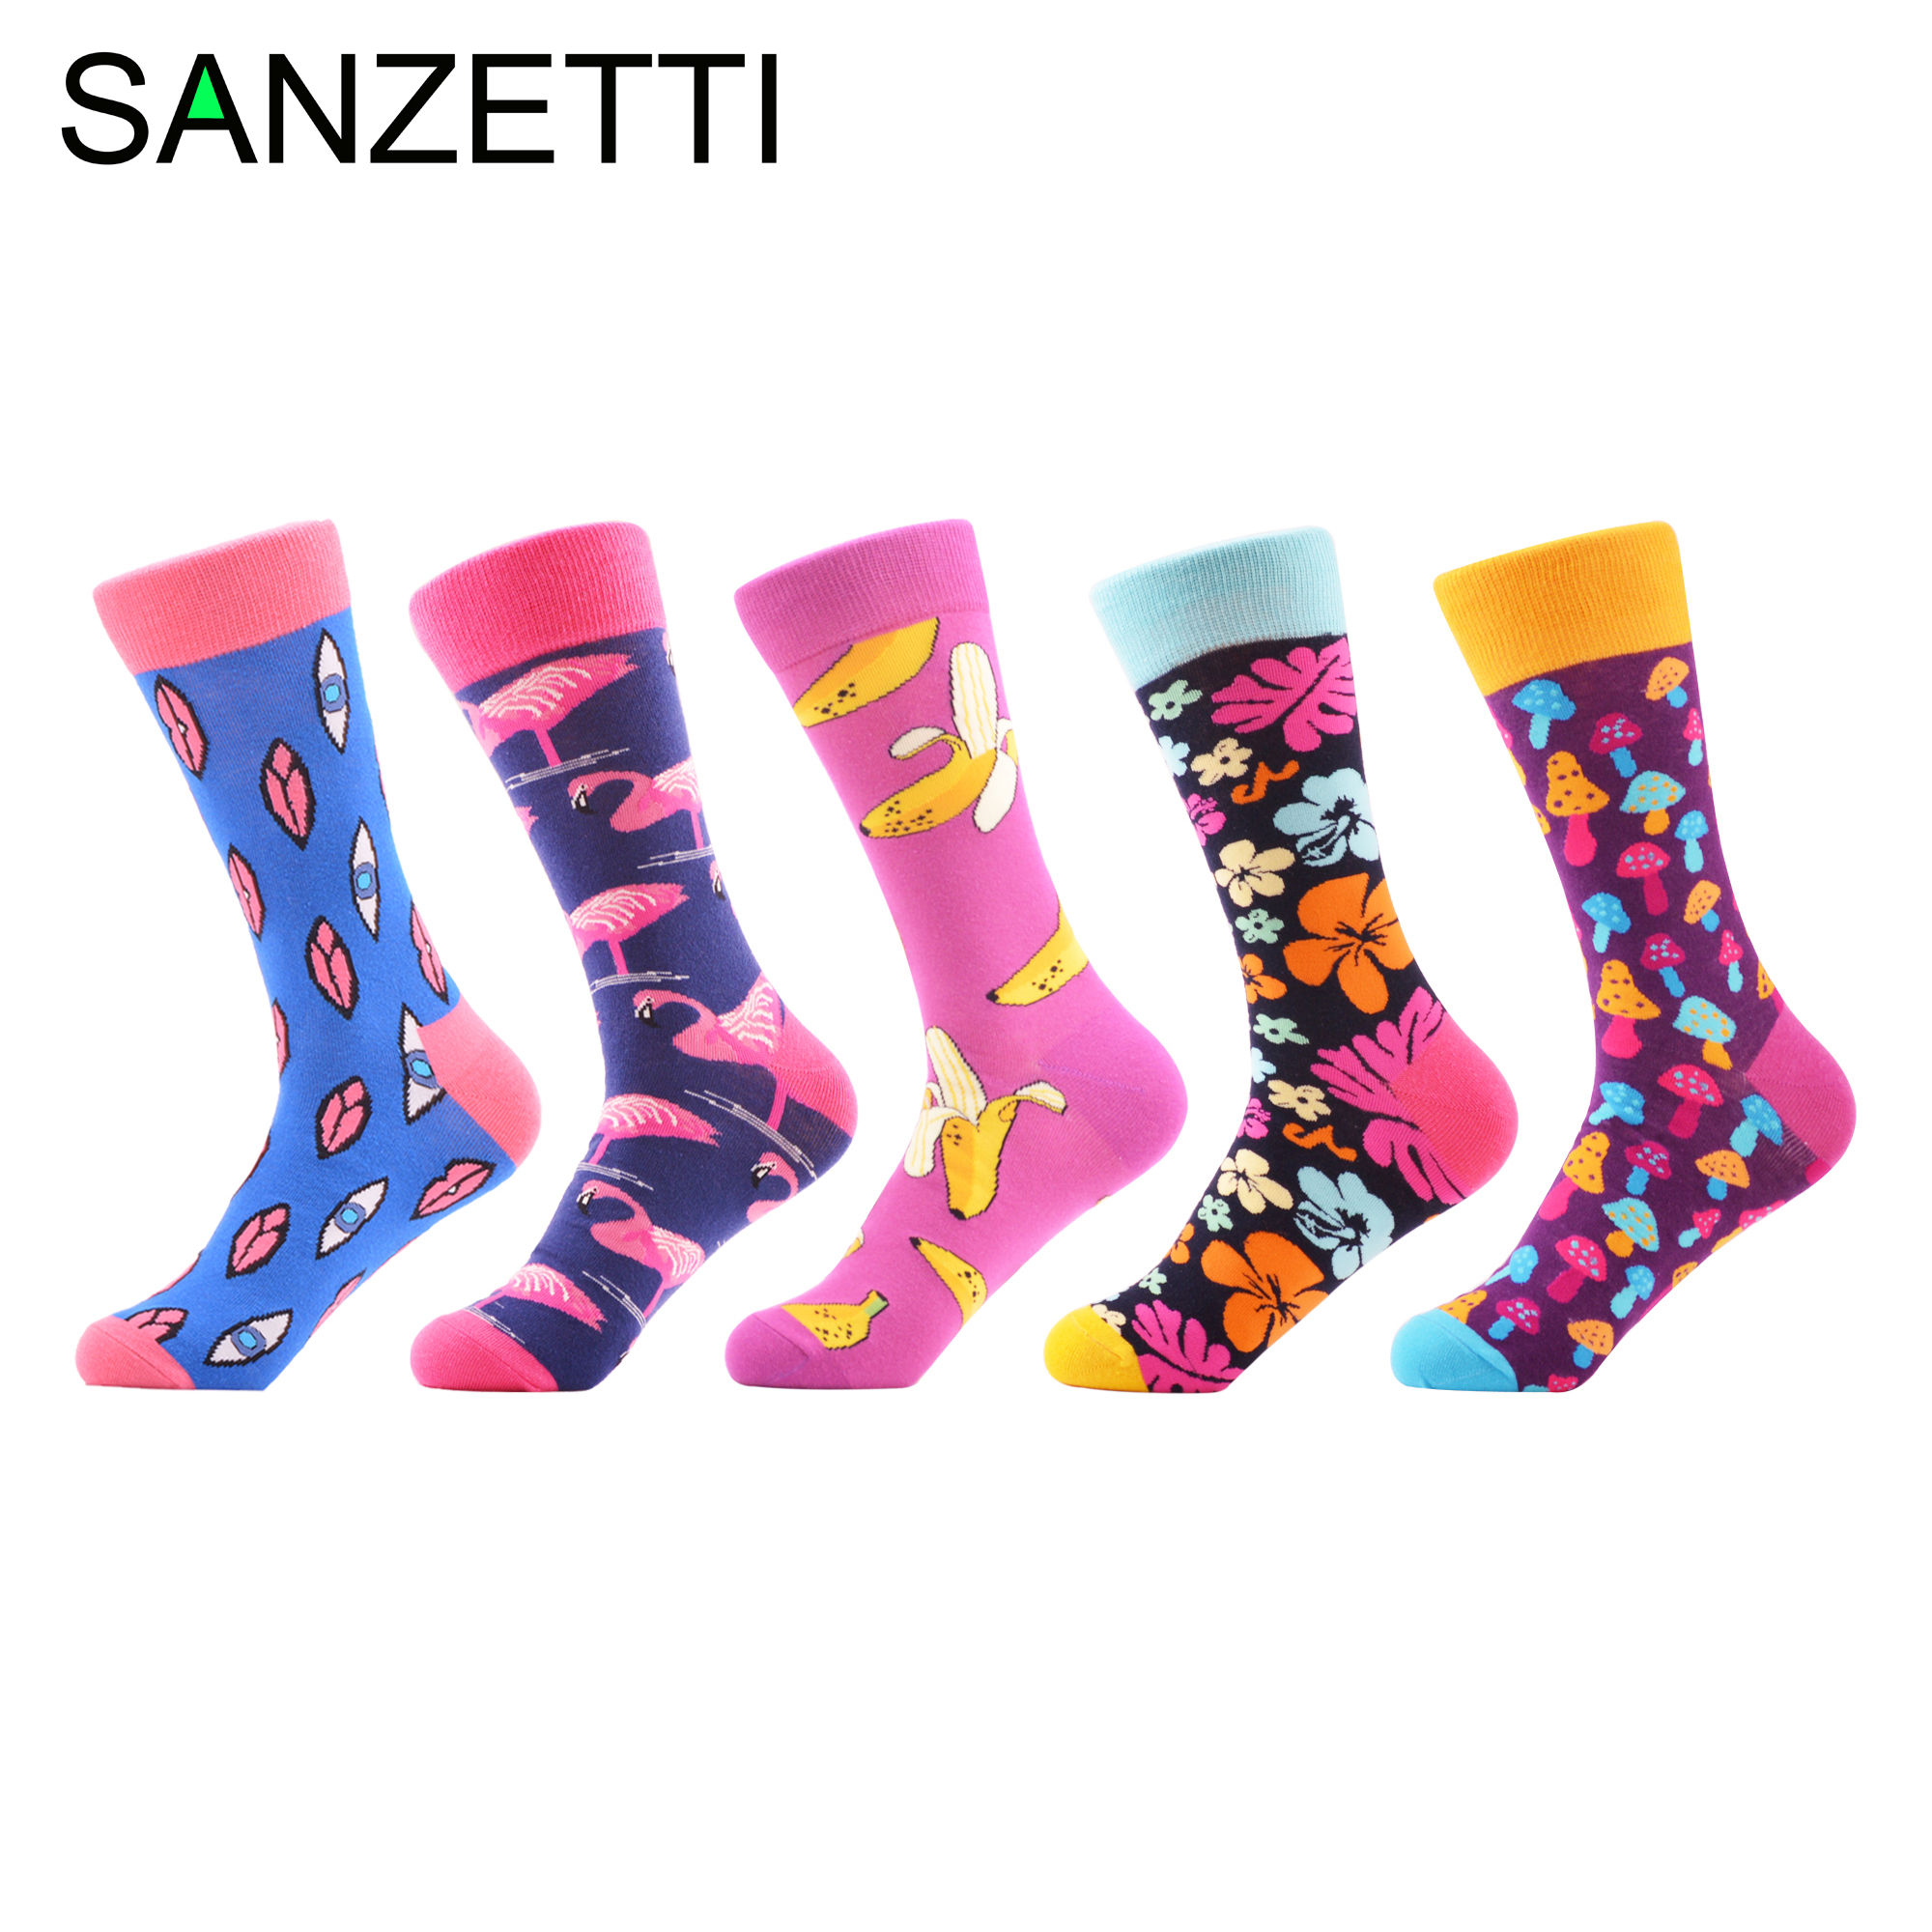 SANZETTI 5 Pairs/lot Colorful Men's Personality Socks Hipter Design Combed Cotton Dress Wedding Socks Casual Crew Party Socks